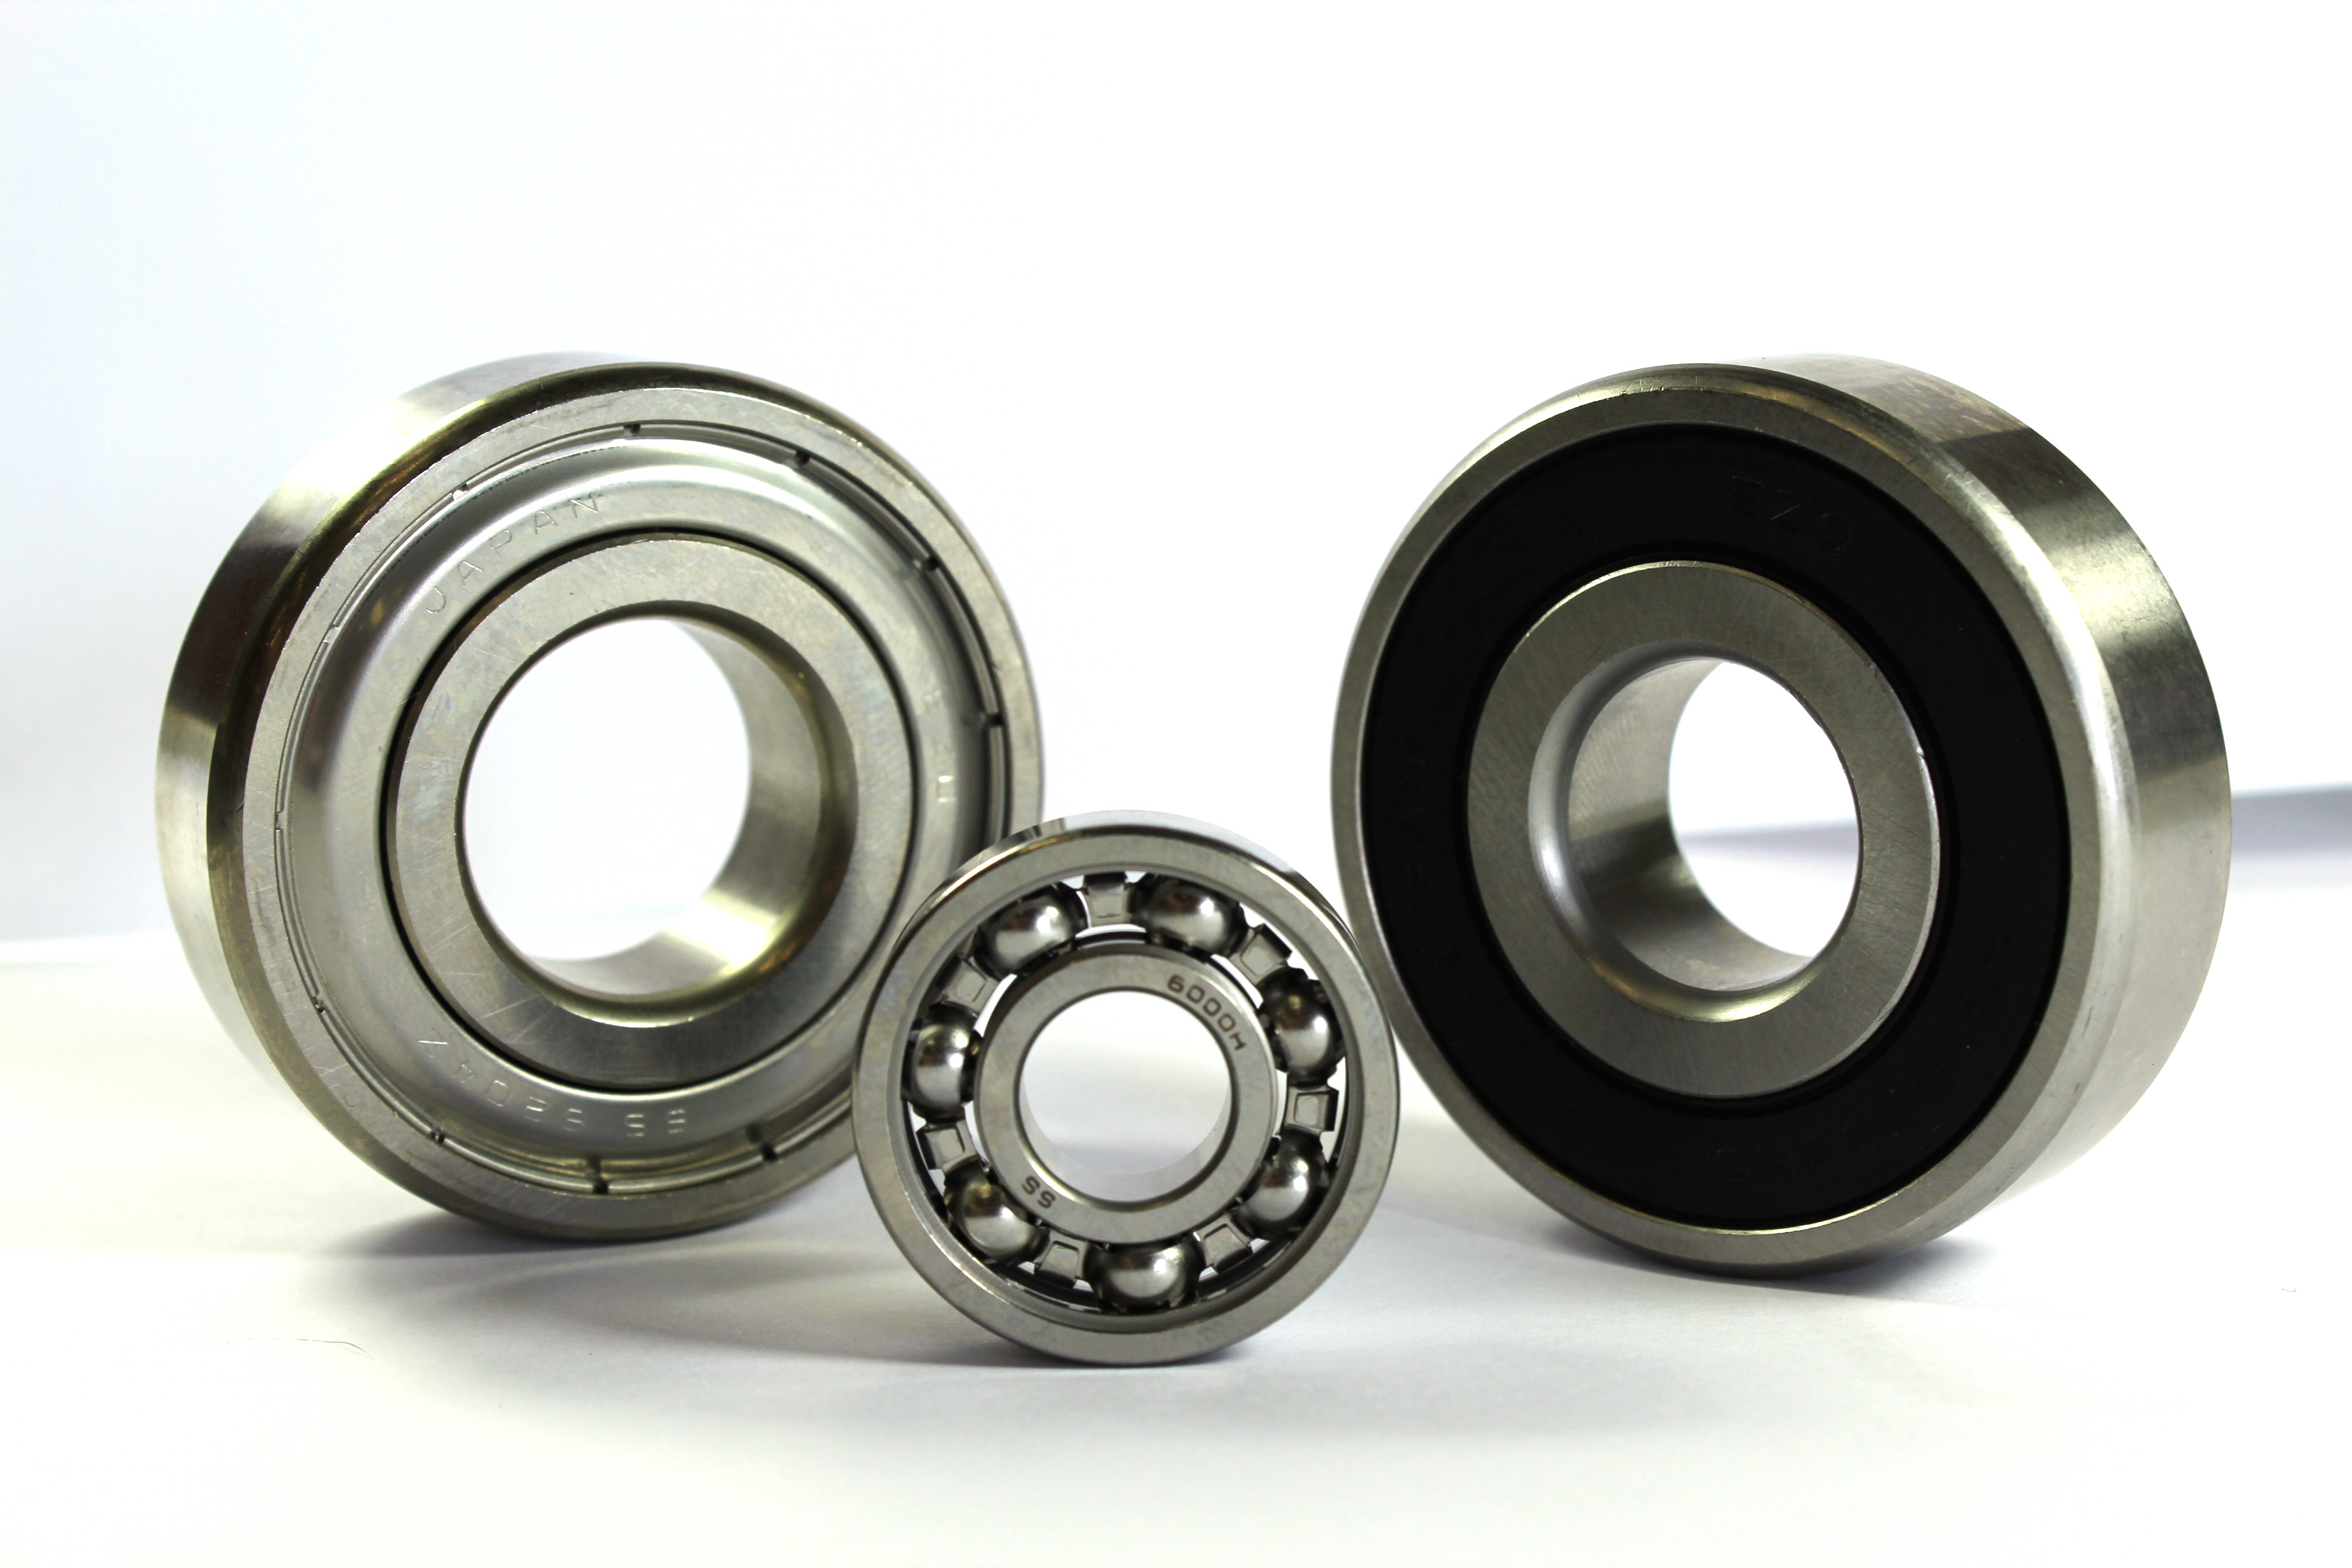 Stainless steel miniature bearings with extended inner ring have an inner ring that is wider than the outer ring by 0.03